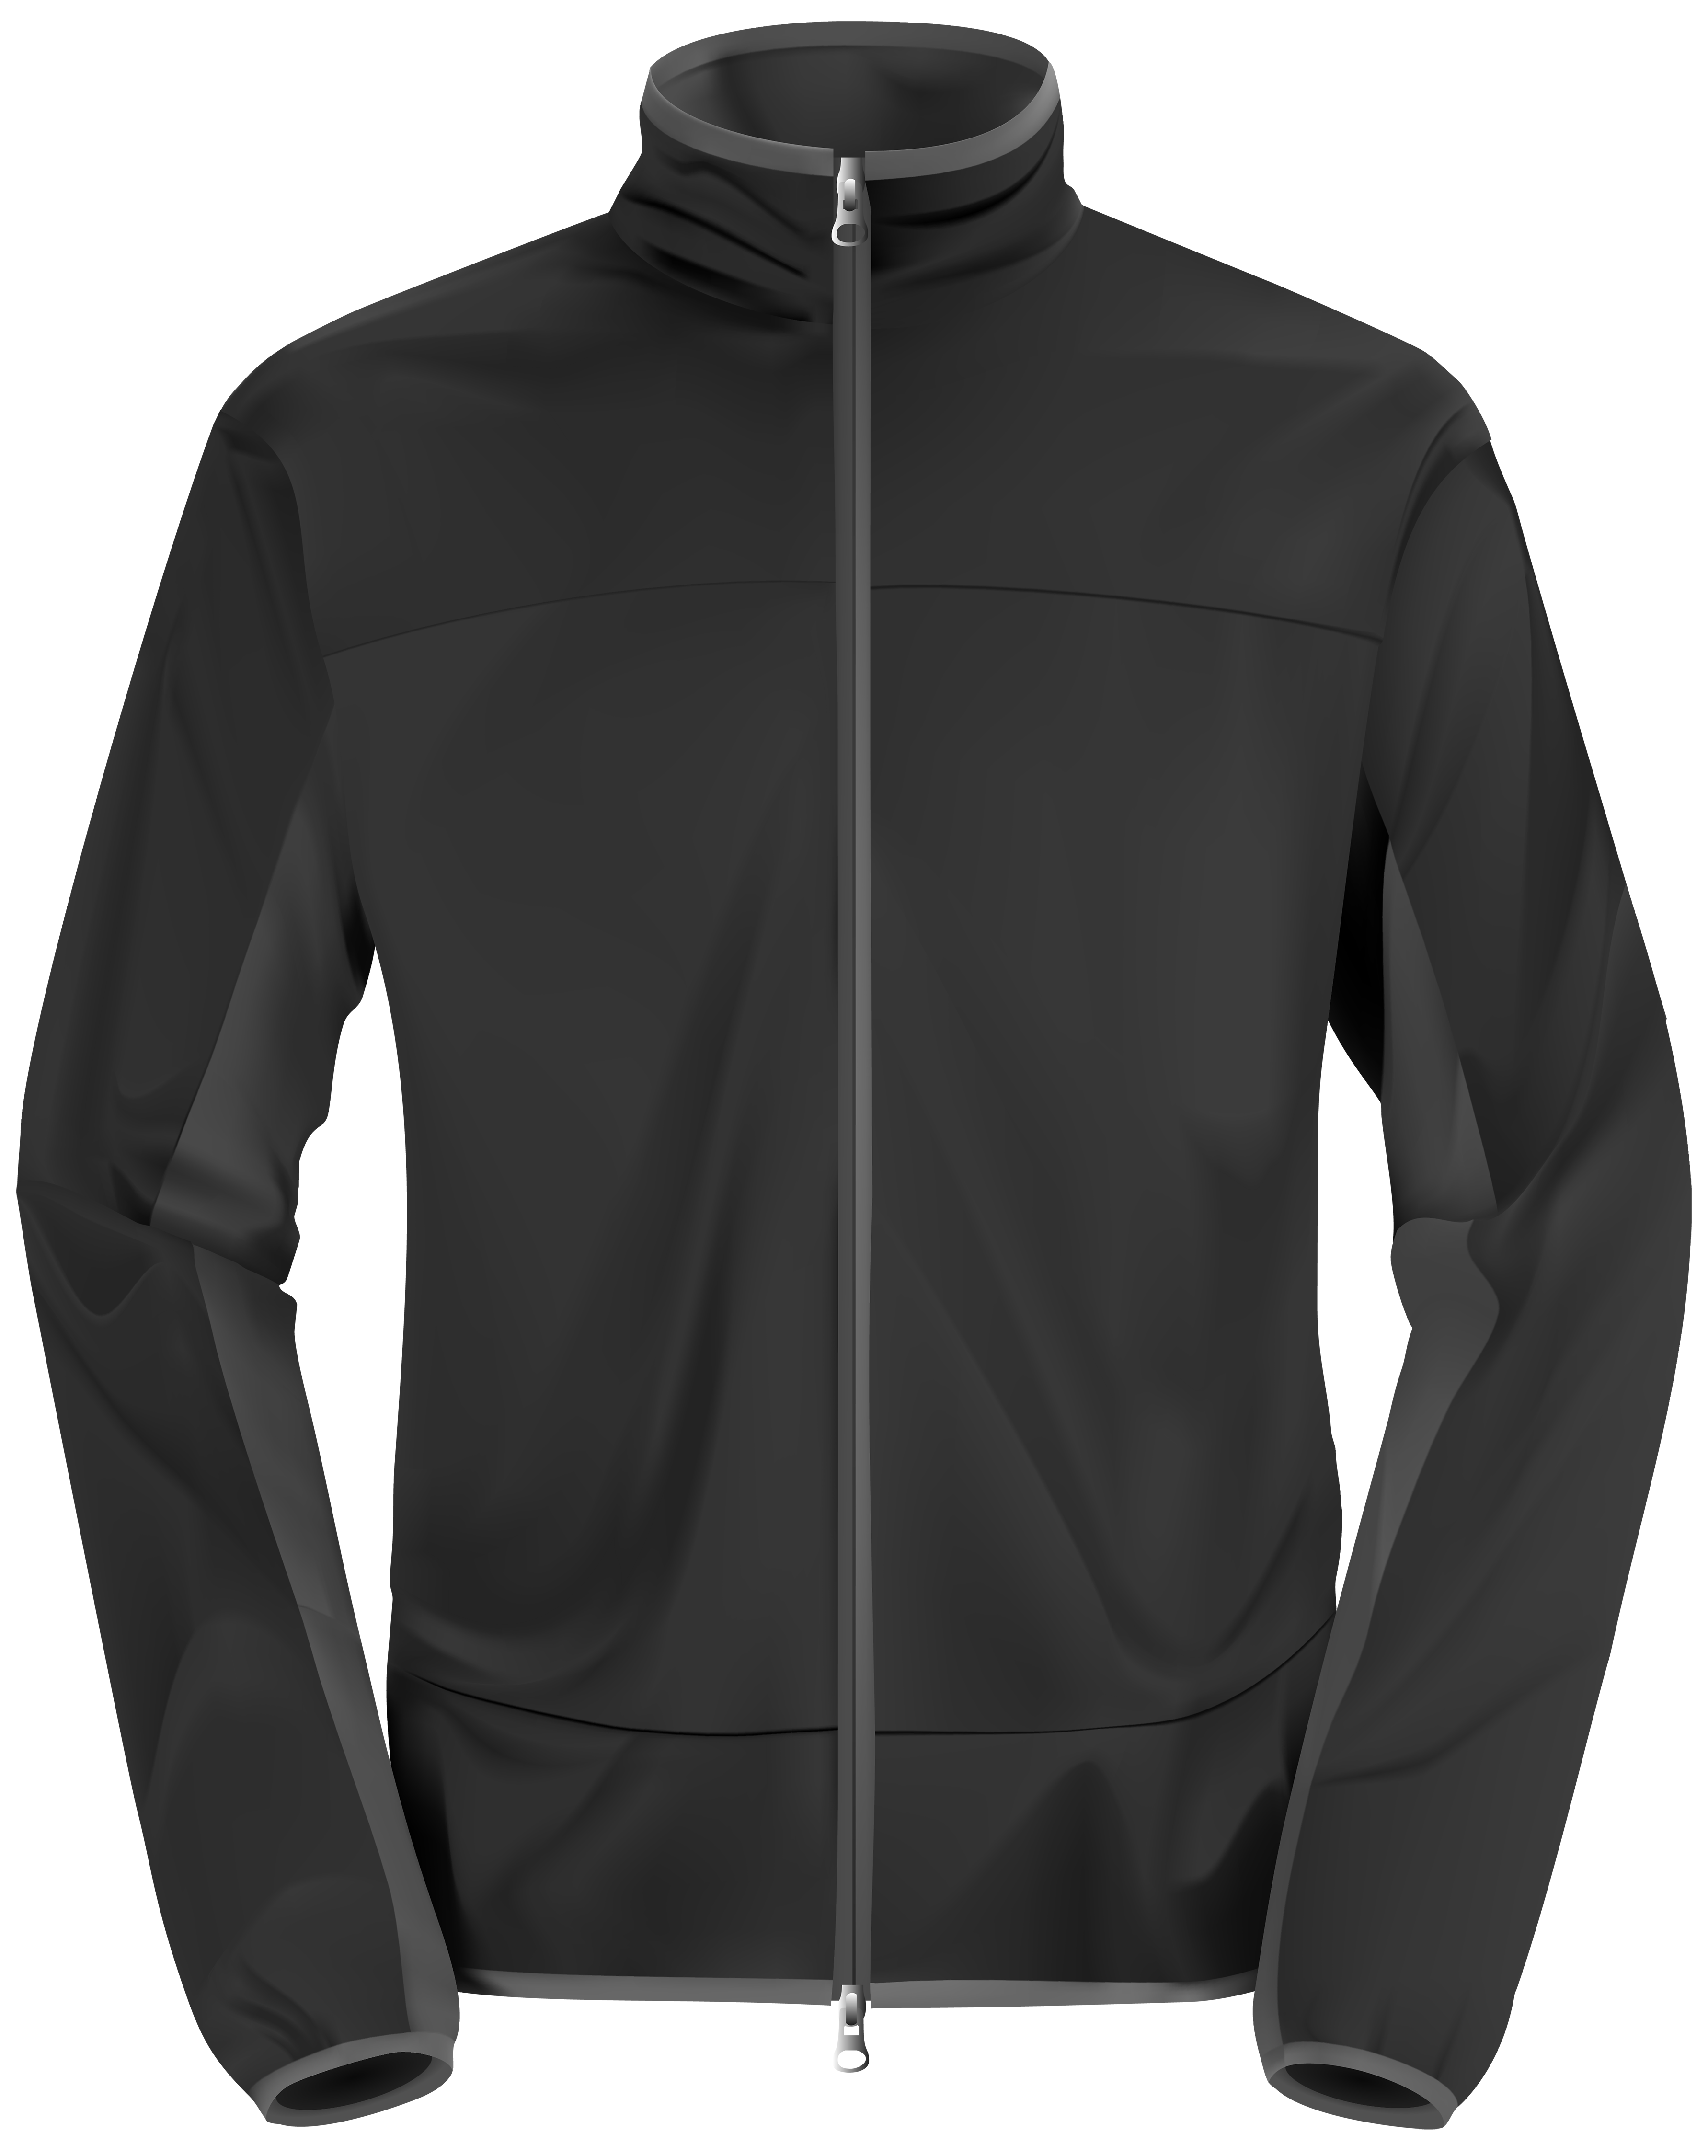 Clothing clipart sportswear. Black hoodie png best